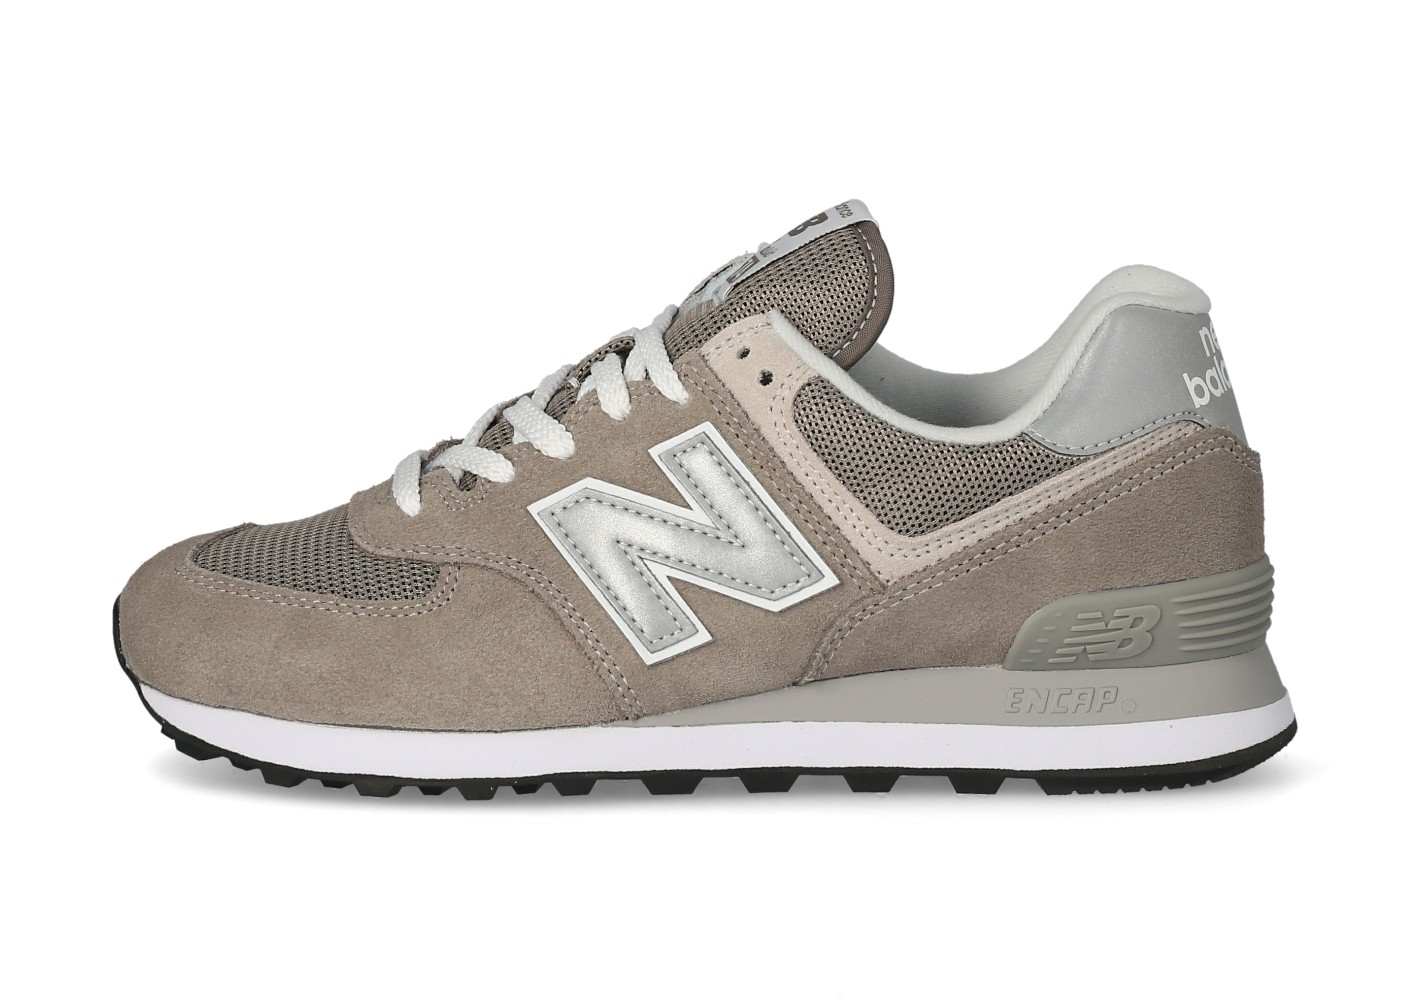 New Balance 574 Core Homme gris - Chaussures Baskets homme - Chausport